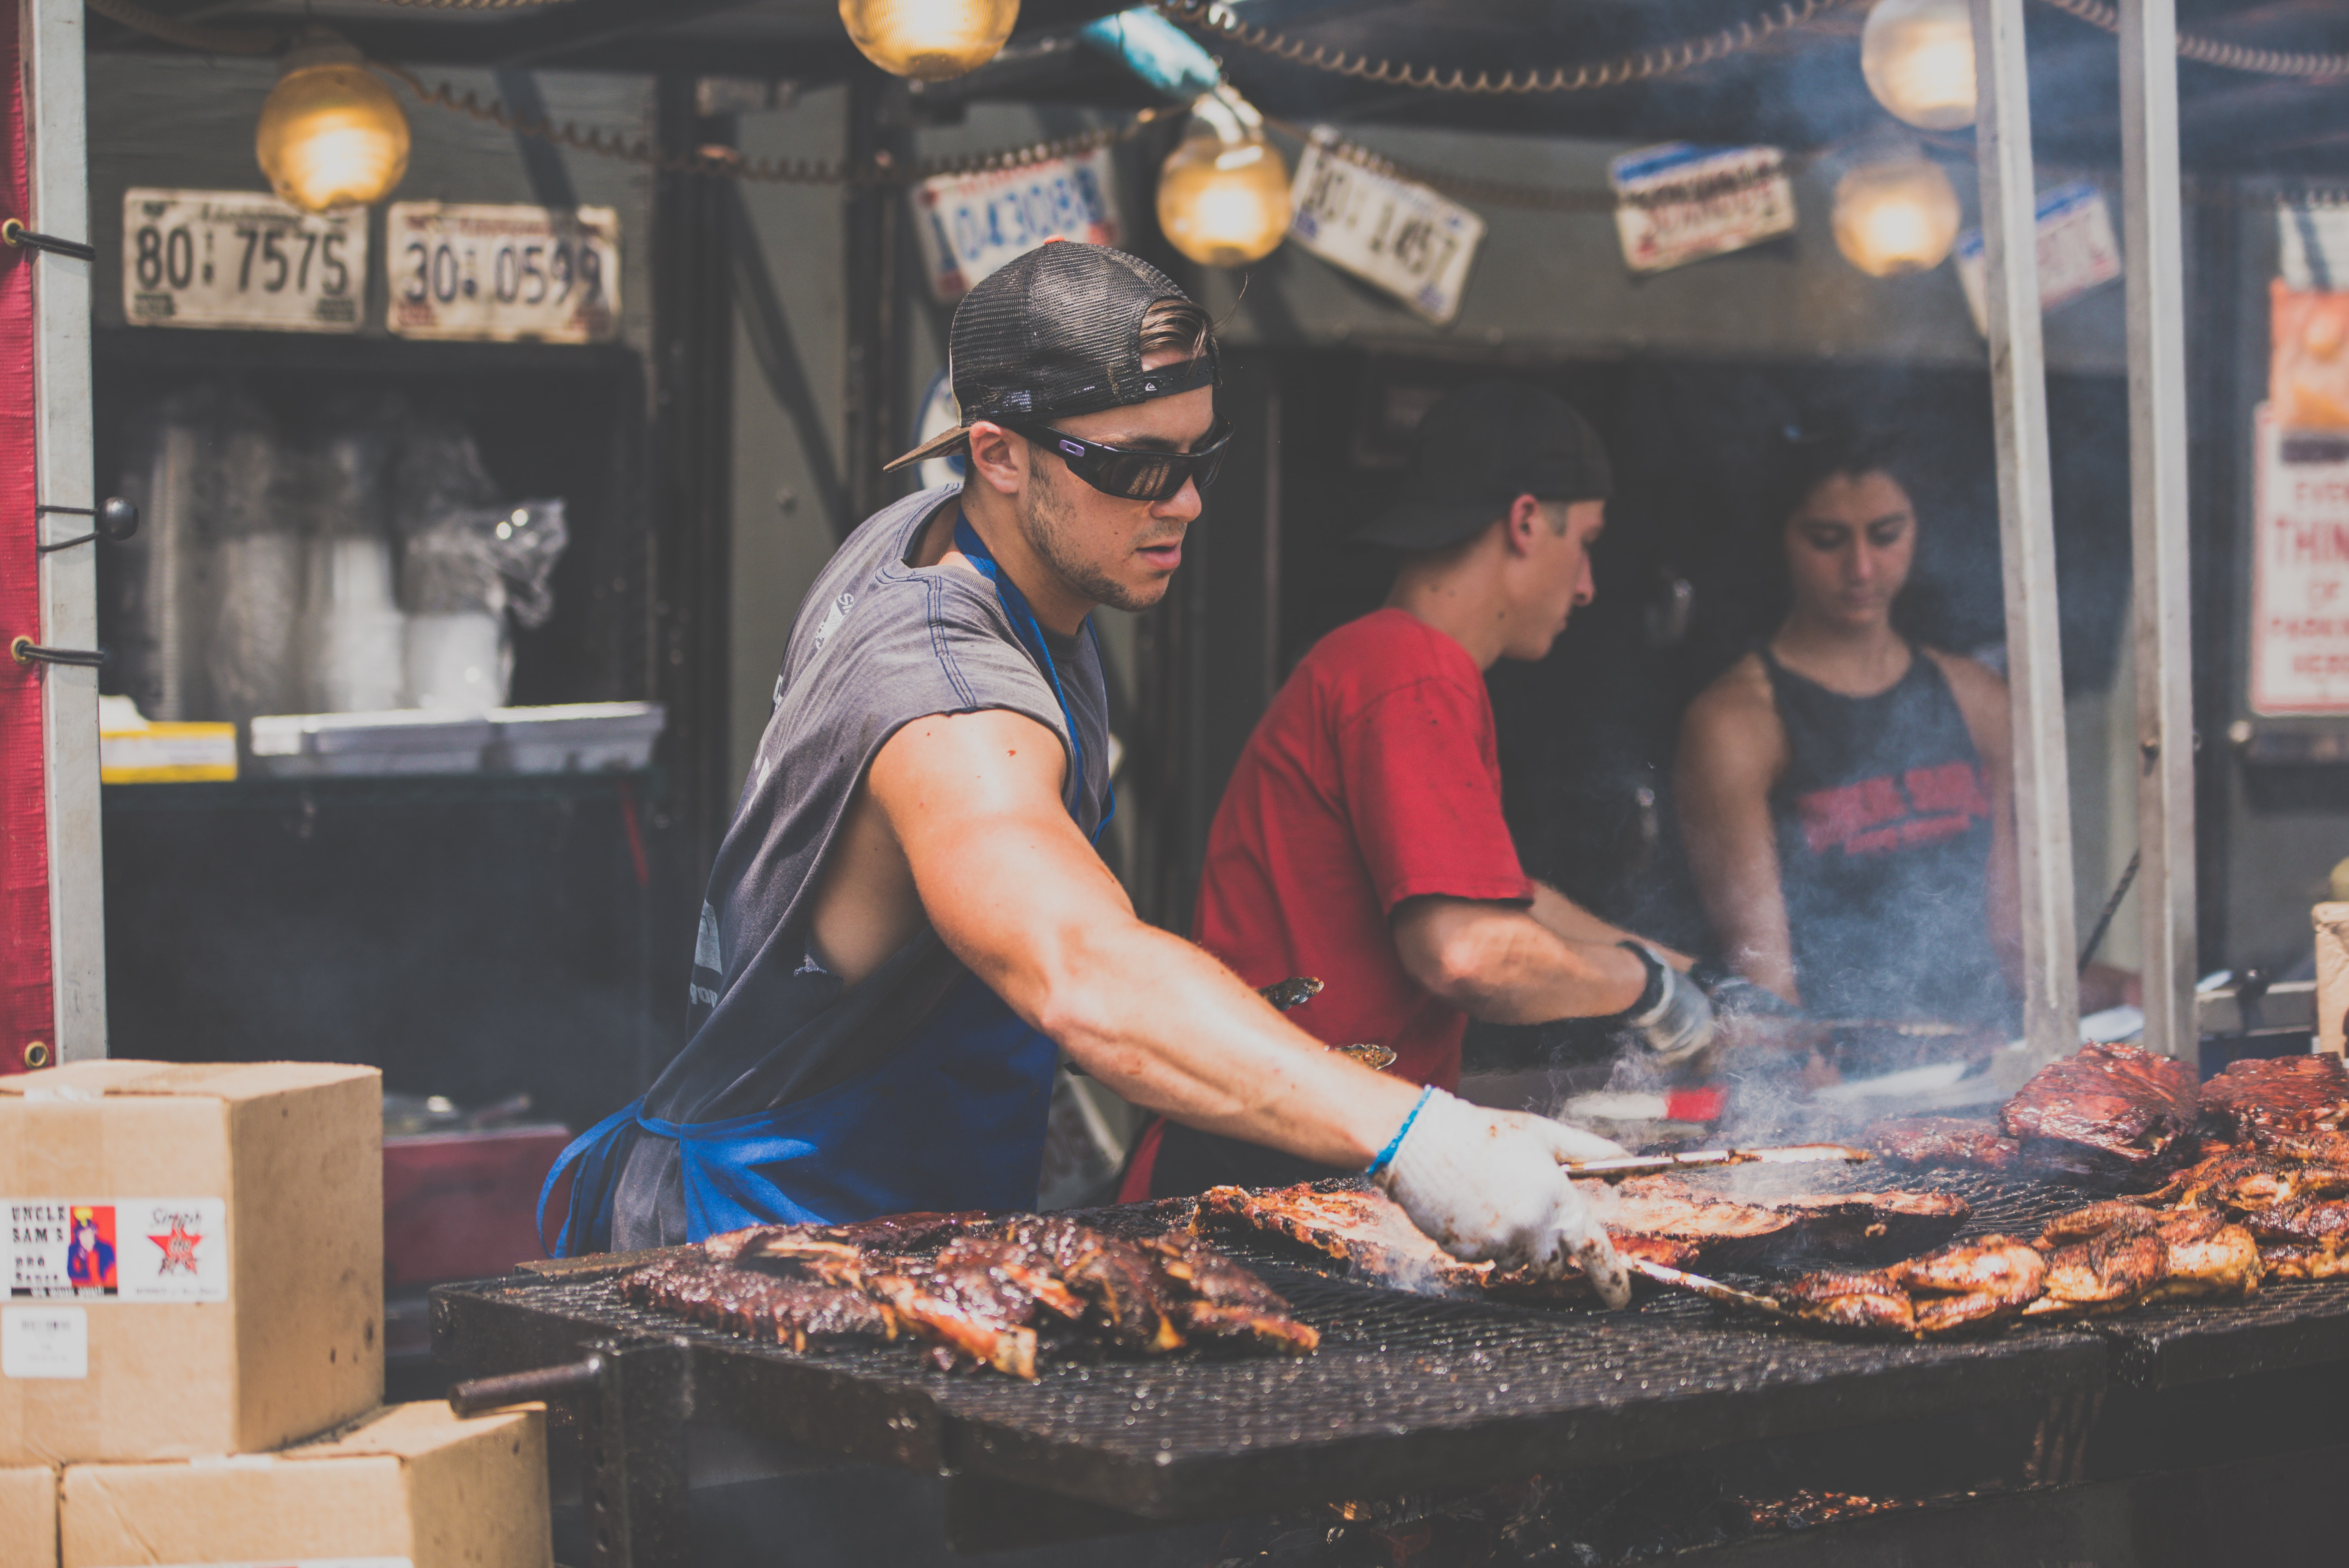 man standing infront of grill while holding tong